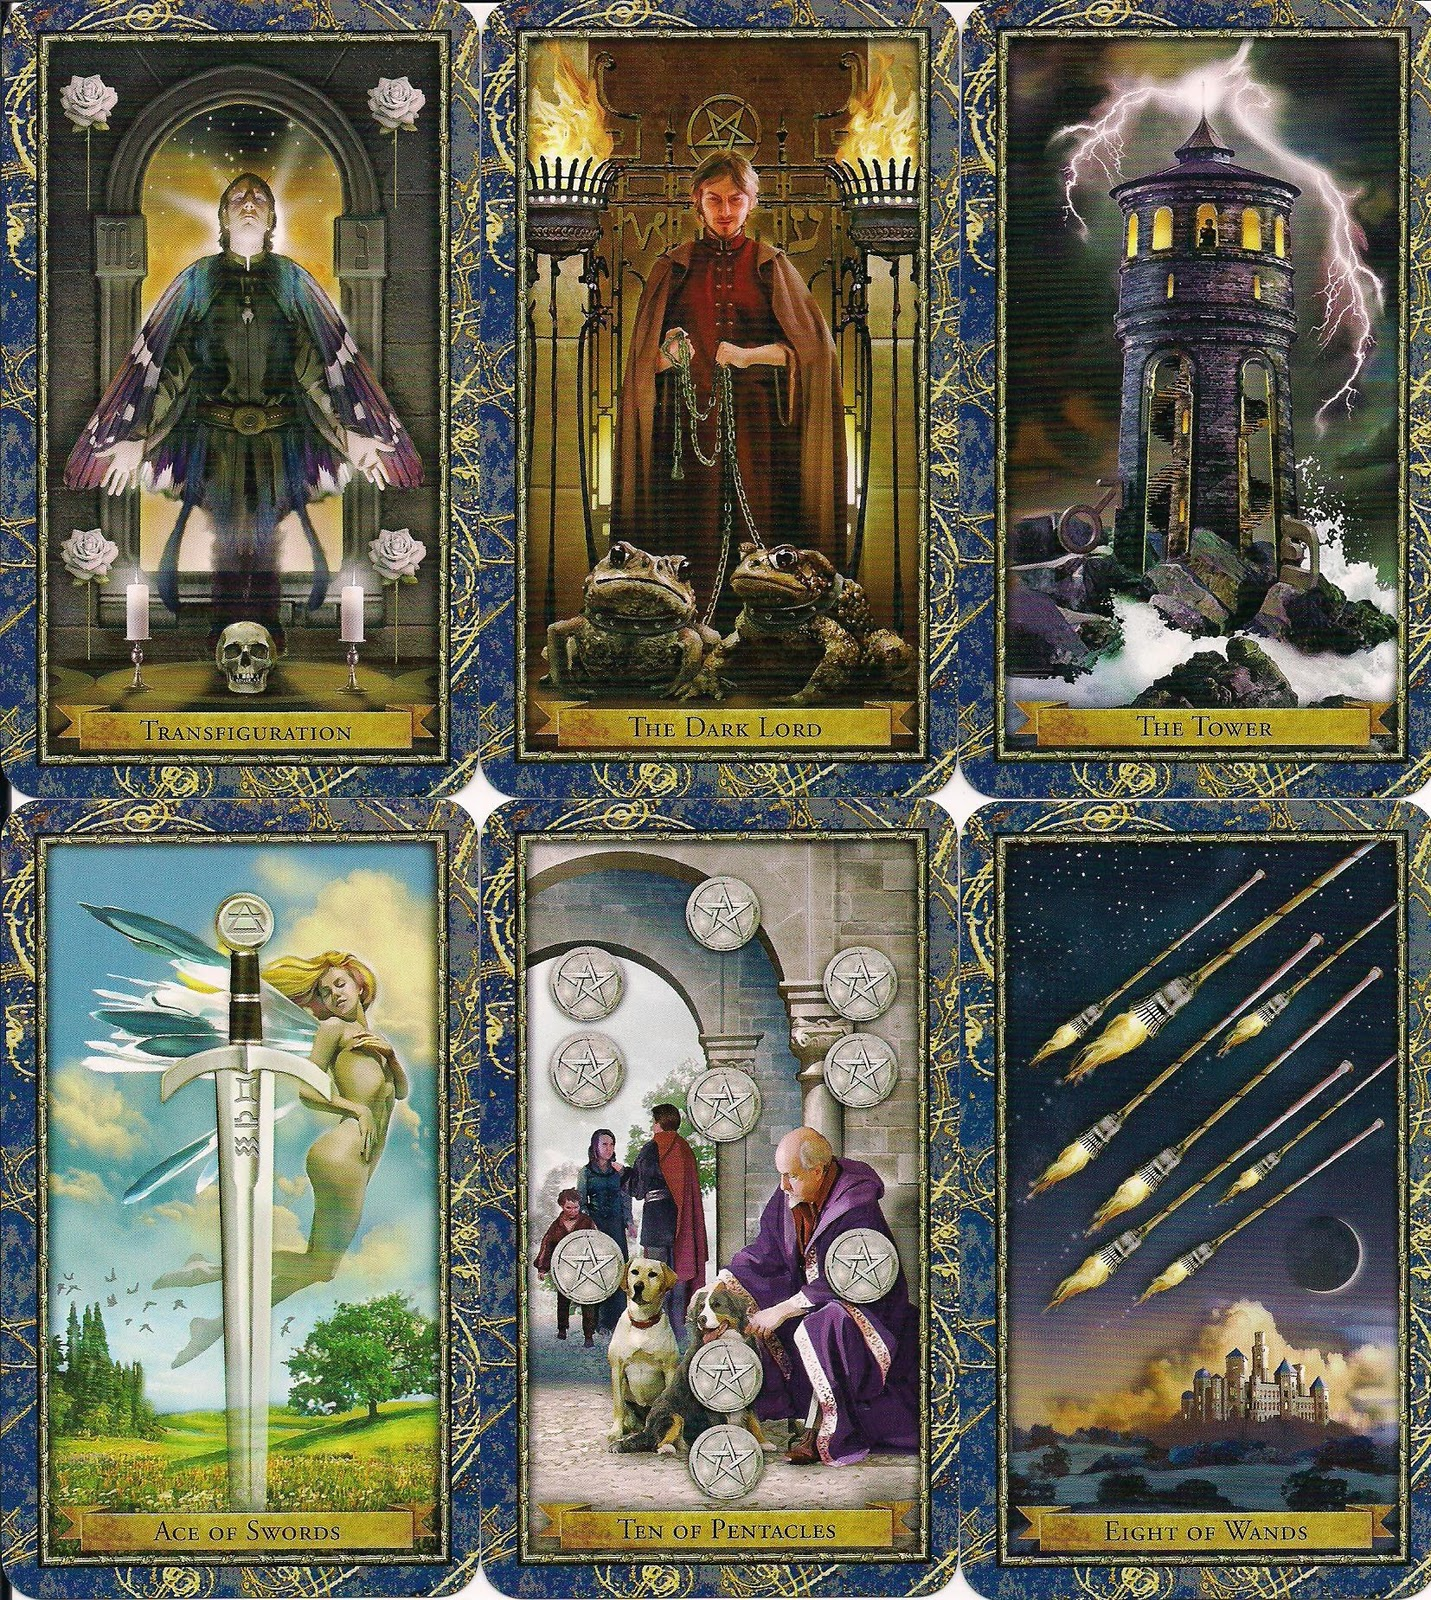 78 whispers in my ear deck review   wizards tarot